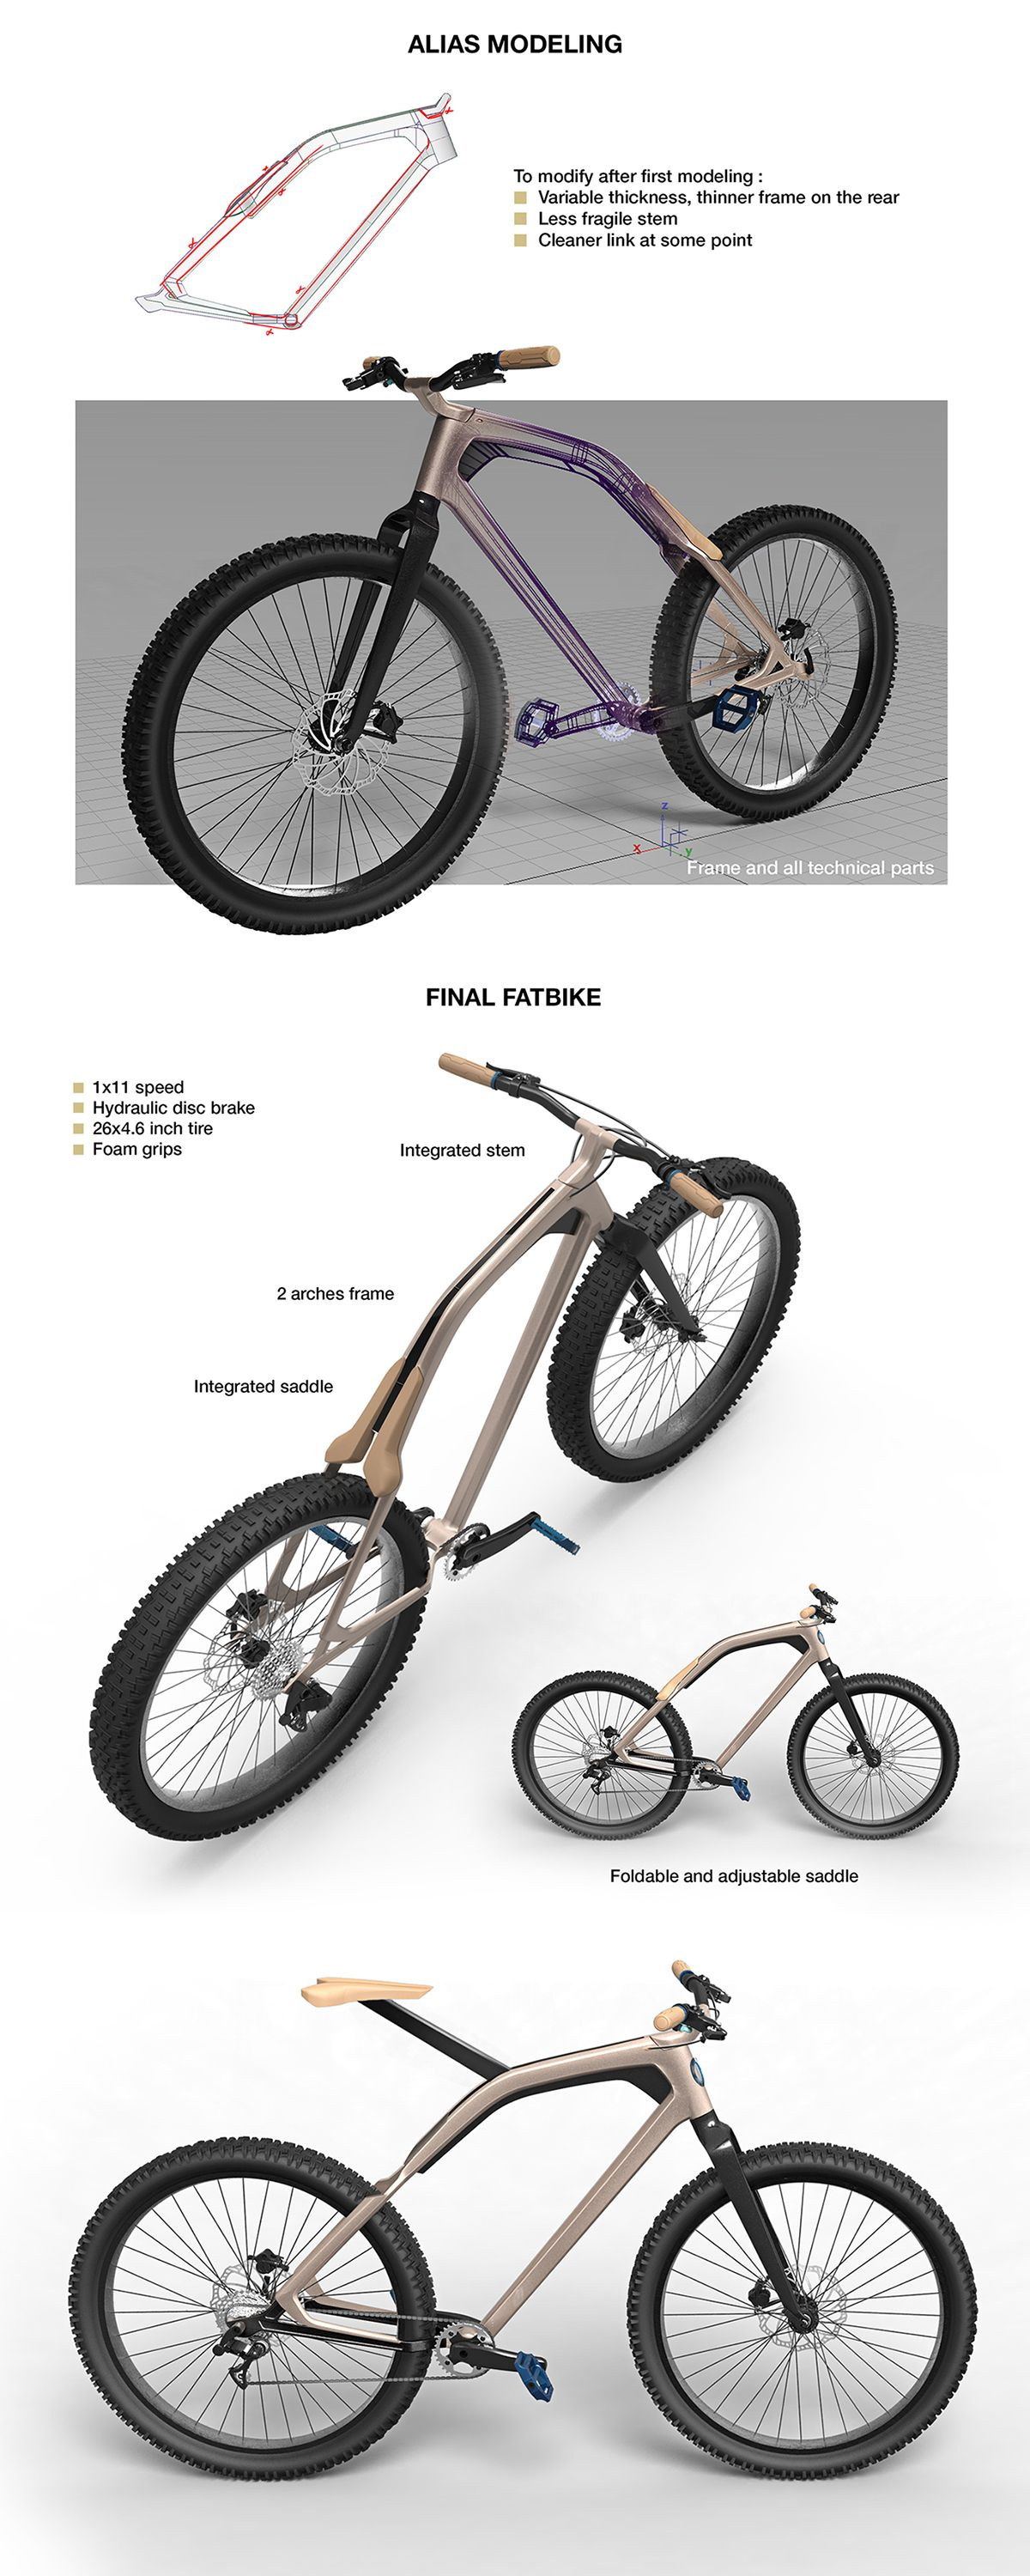 Fatbike For Automotive Brand Volvo Be Safe Free The Bike Is Bmw Fat Working Everywhere There Are A Foldable Saddle To Easily Move On Rack